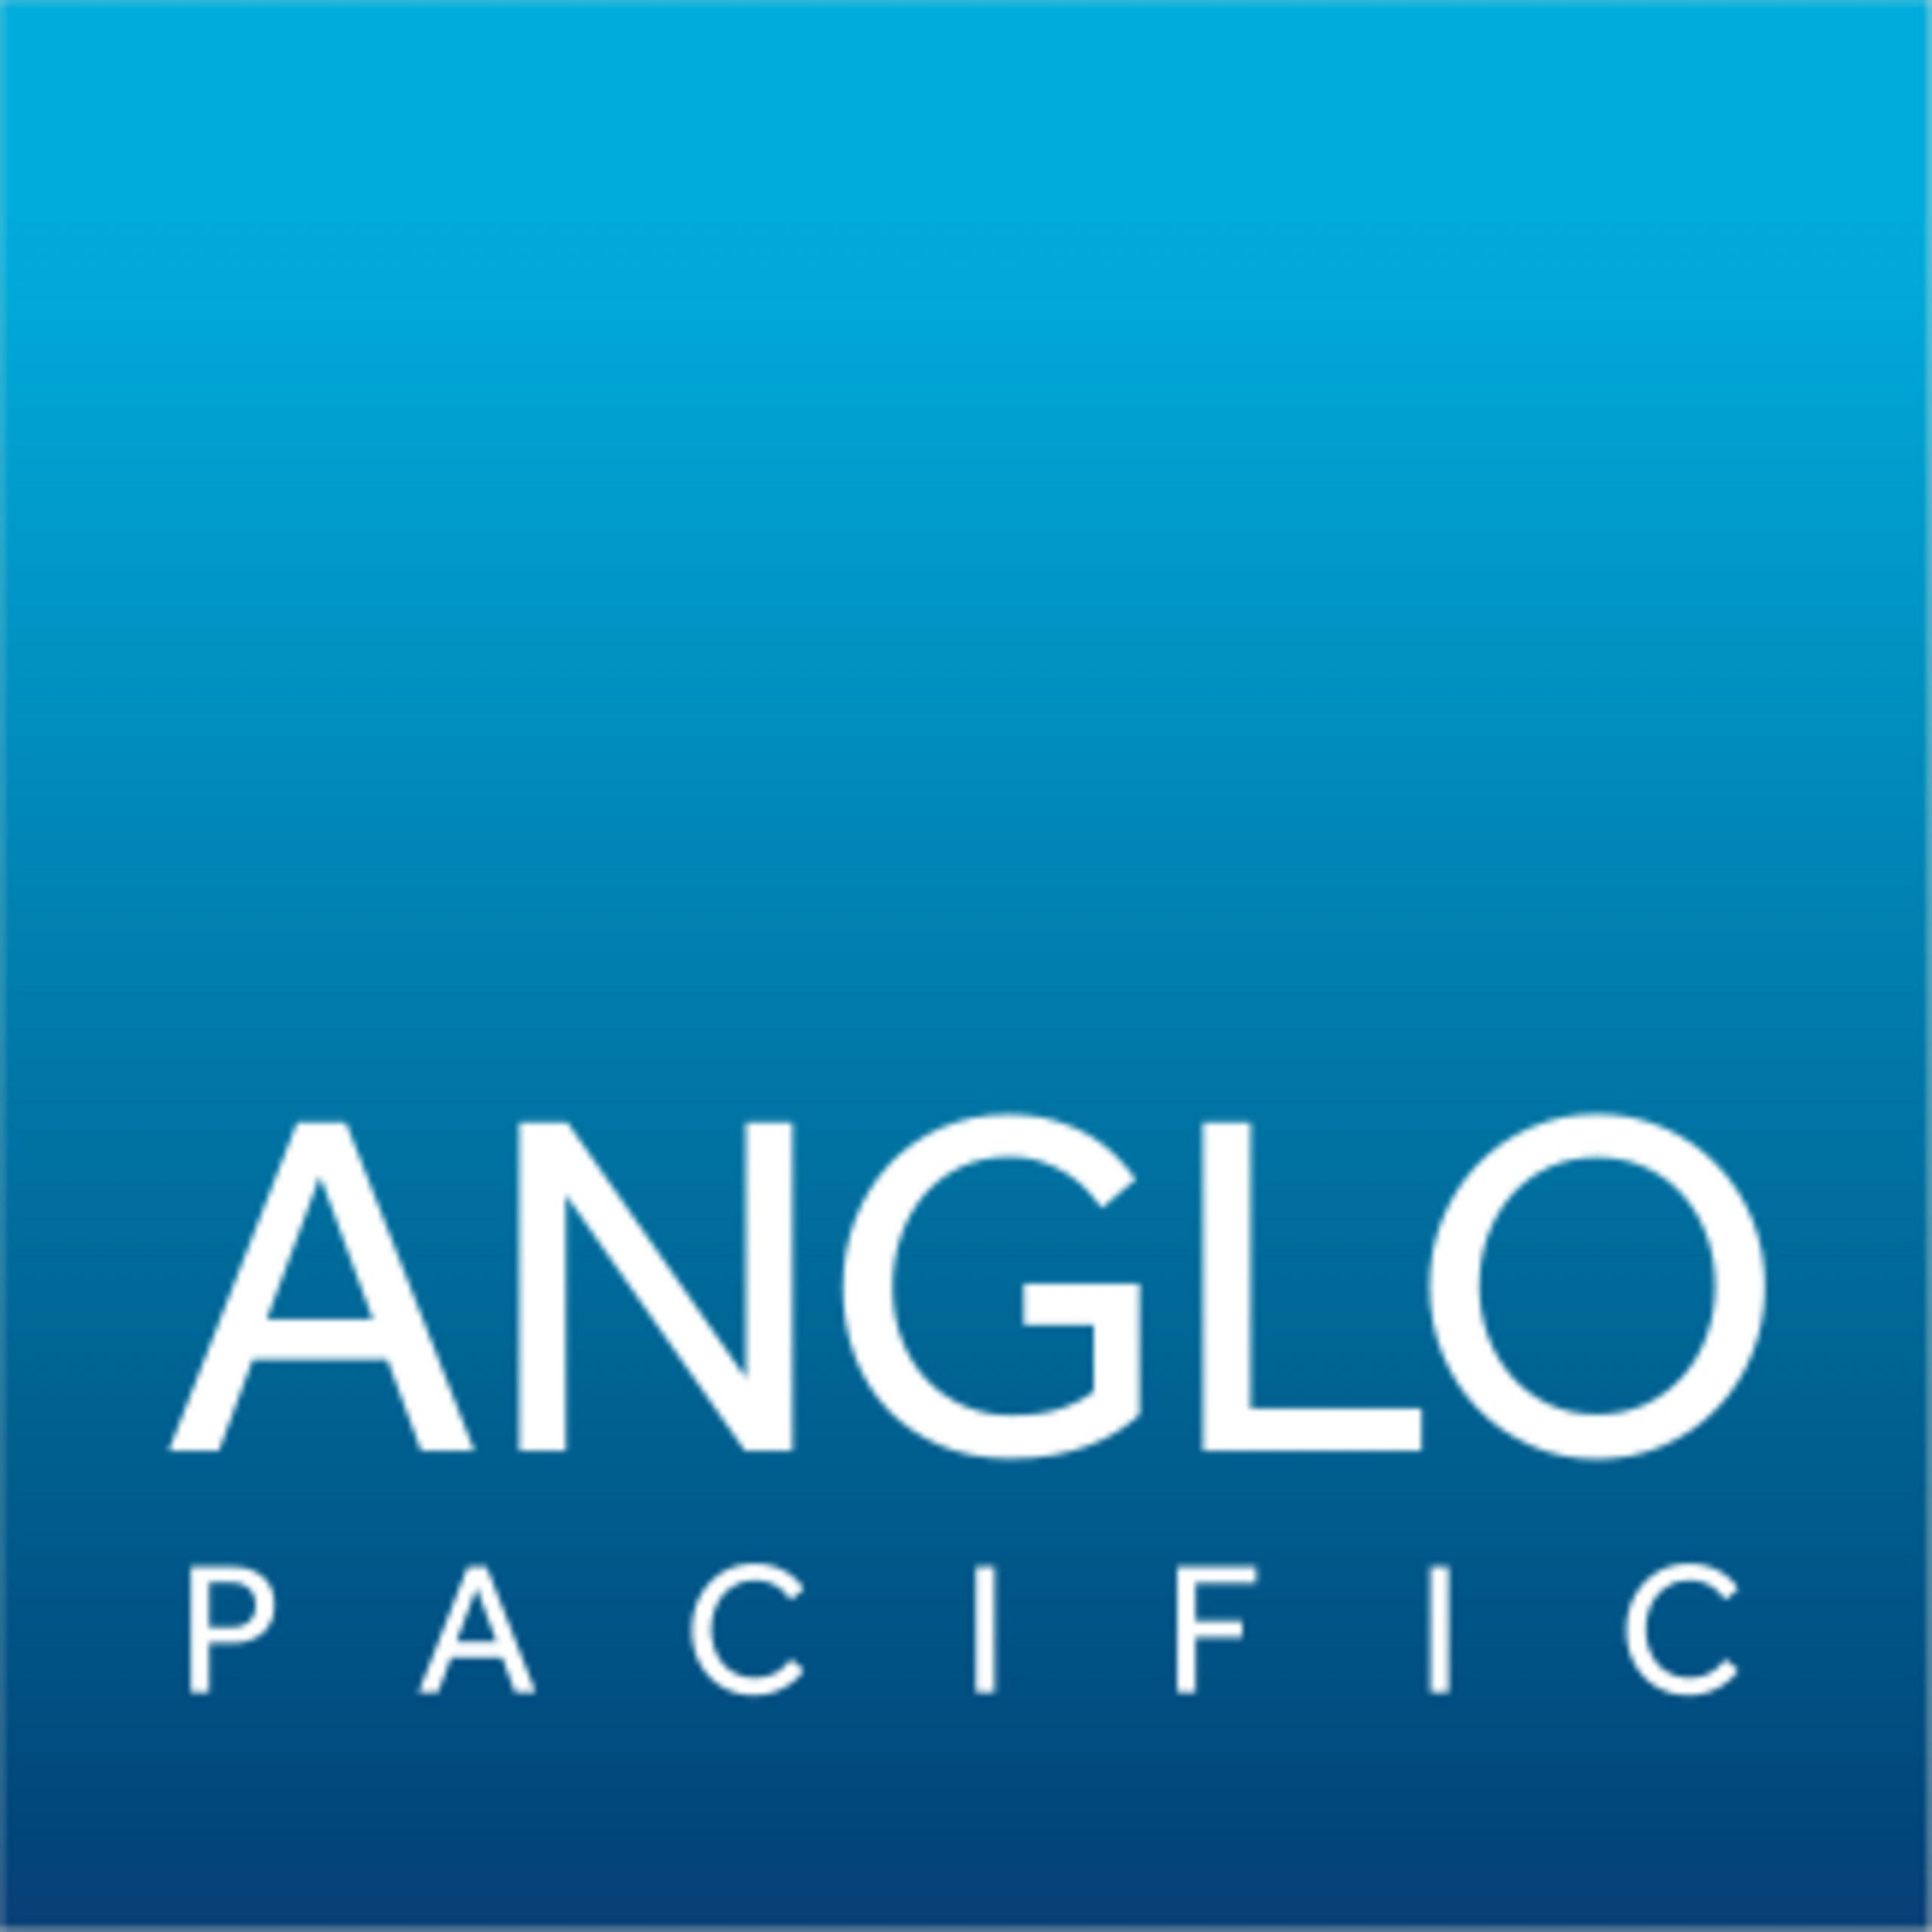 Anglo Pacific logo